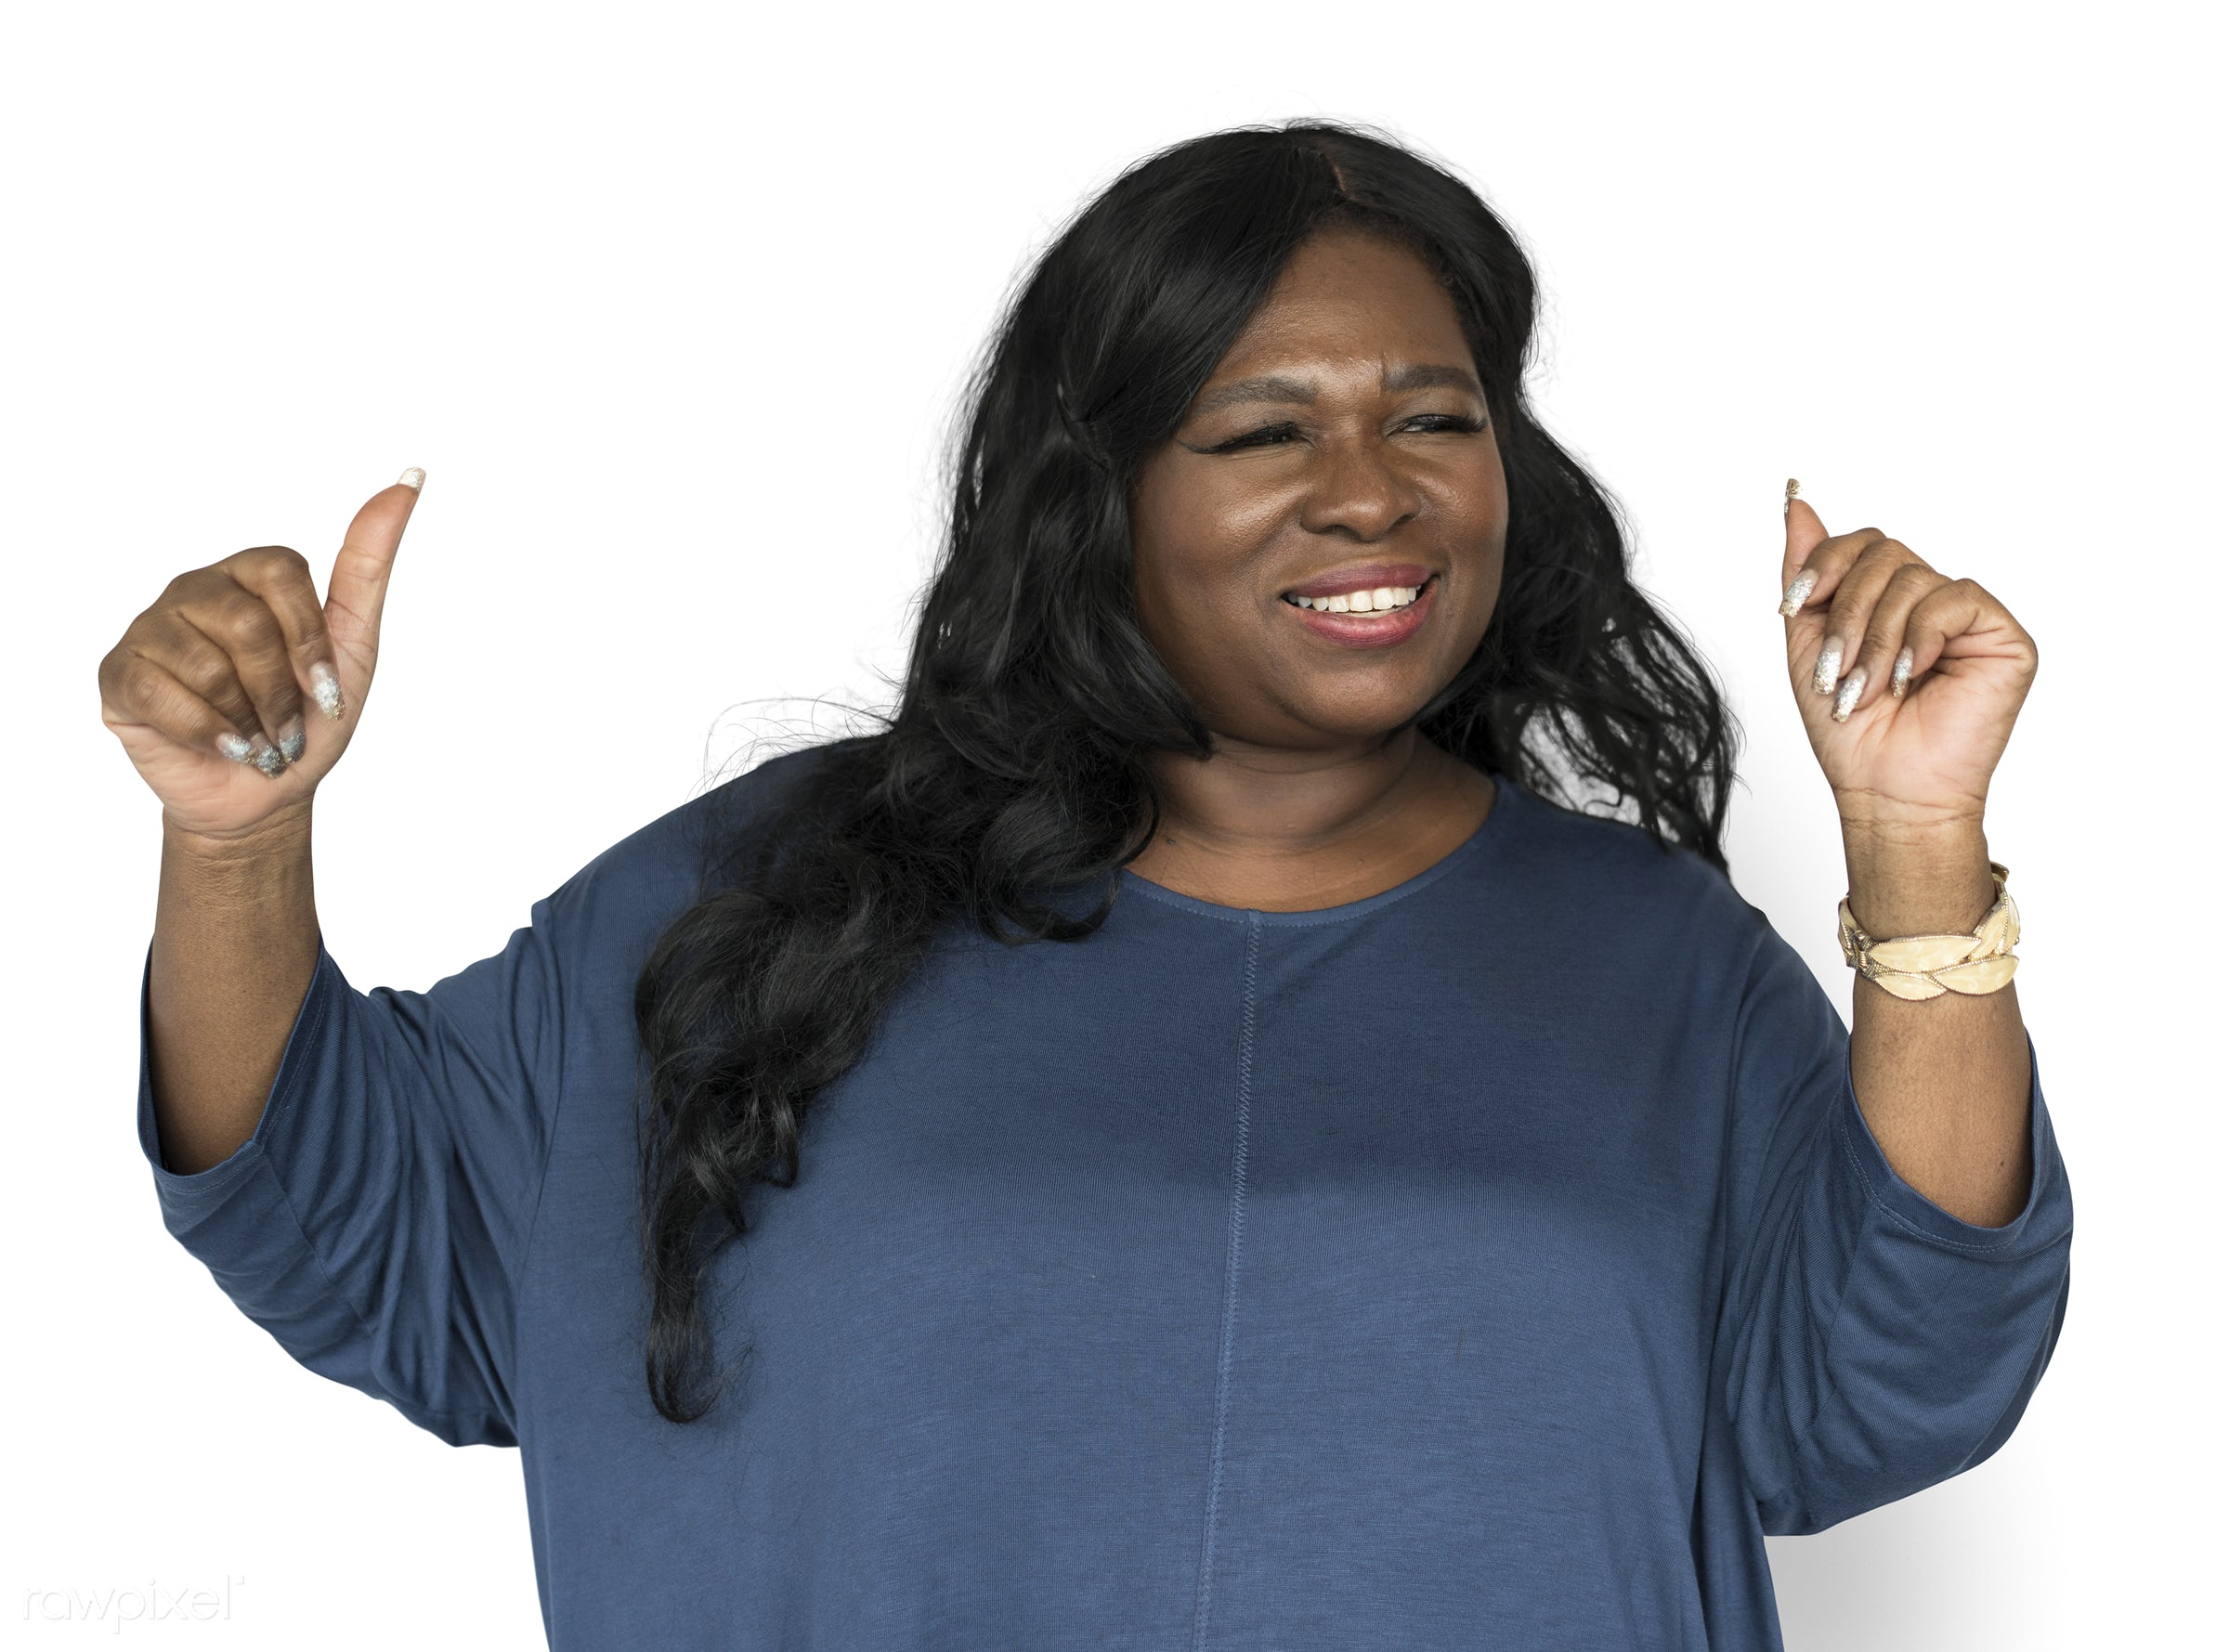 studio, expression, dancing, person, isolated on white, people, girl, woman, happy, smile, cheerful, smiling, black,...